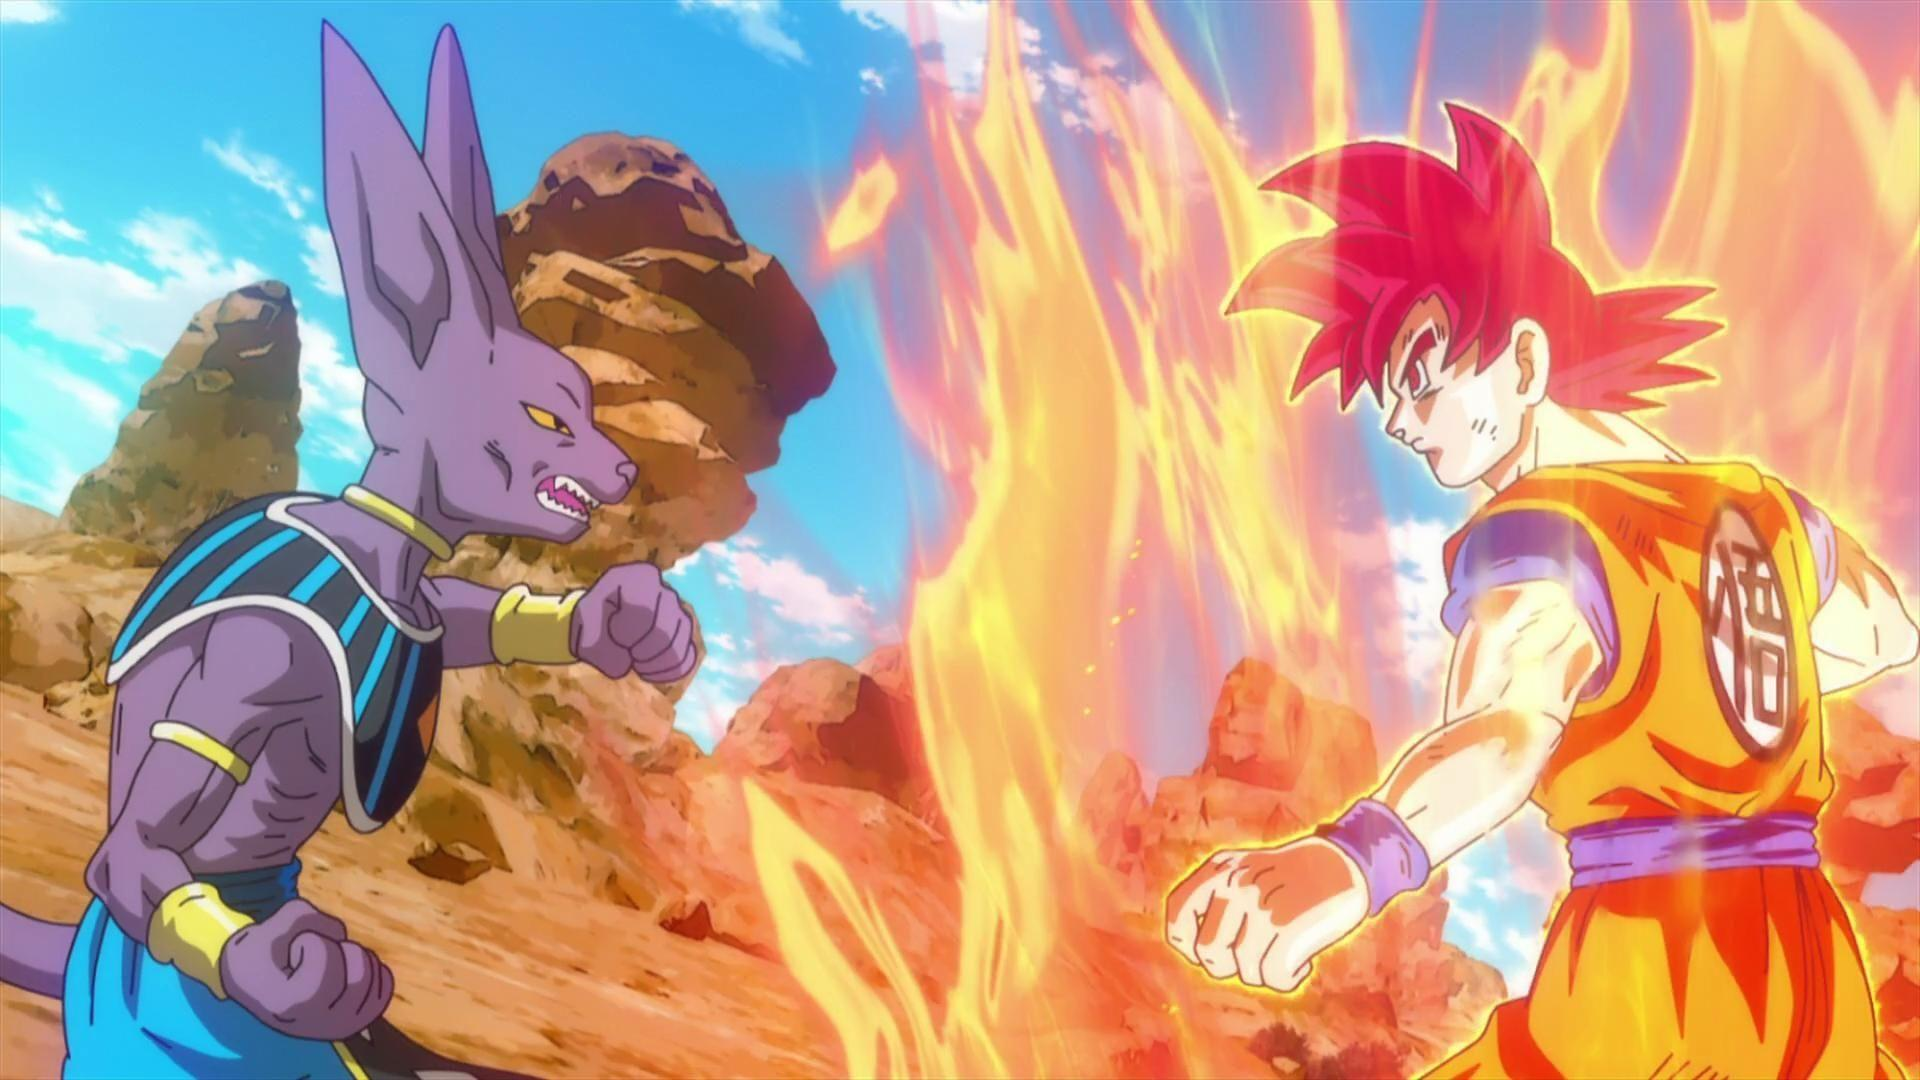 Dragon Ball Z Battle of Gods Bills vs Son Goku Super Saiyan God